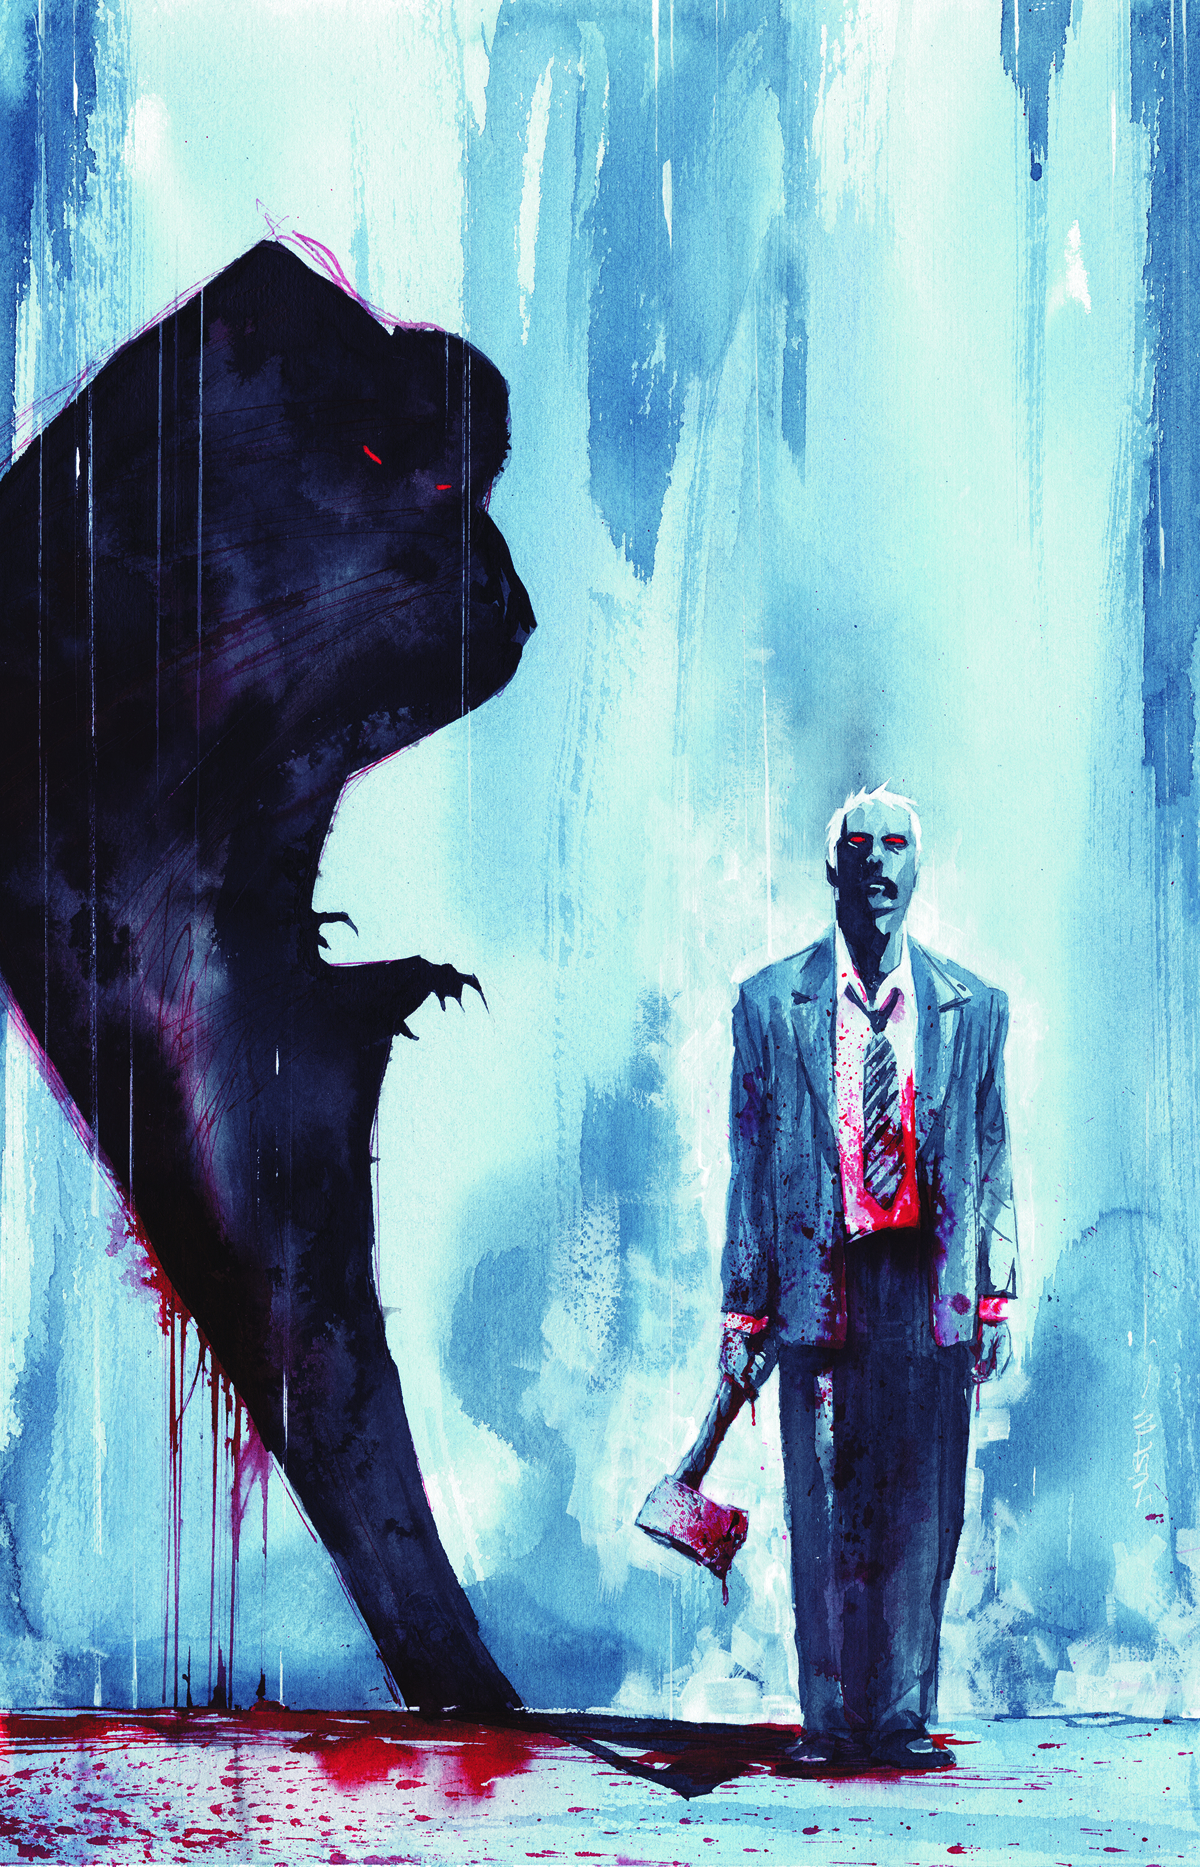 AMERICAN VAMPIRE LORD OF NIGHTMARES #4 (OF 5) (MR)